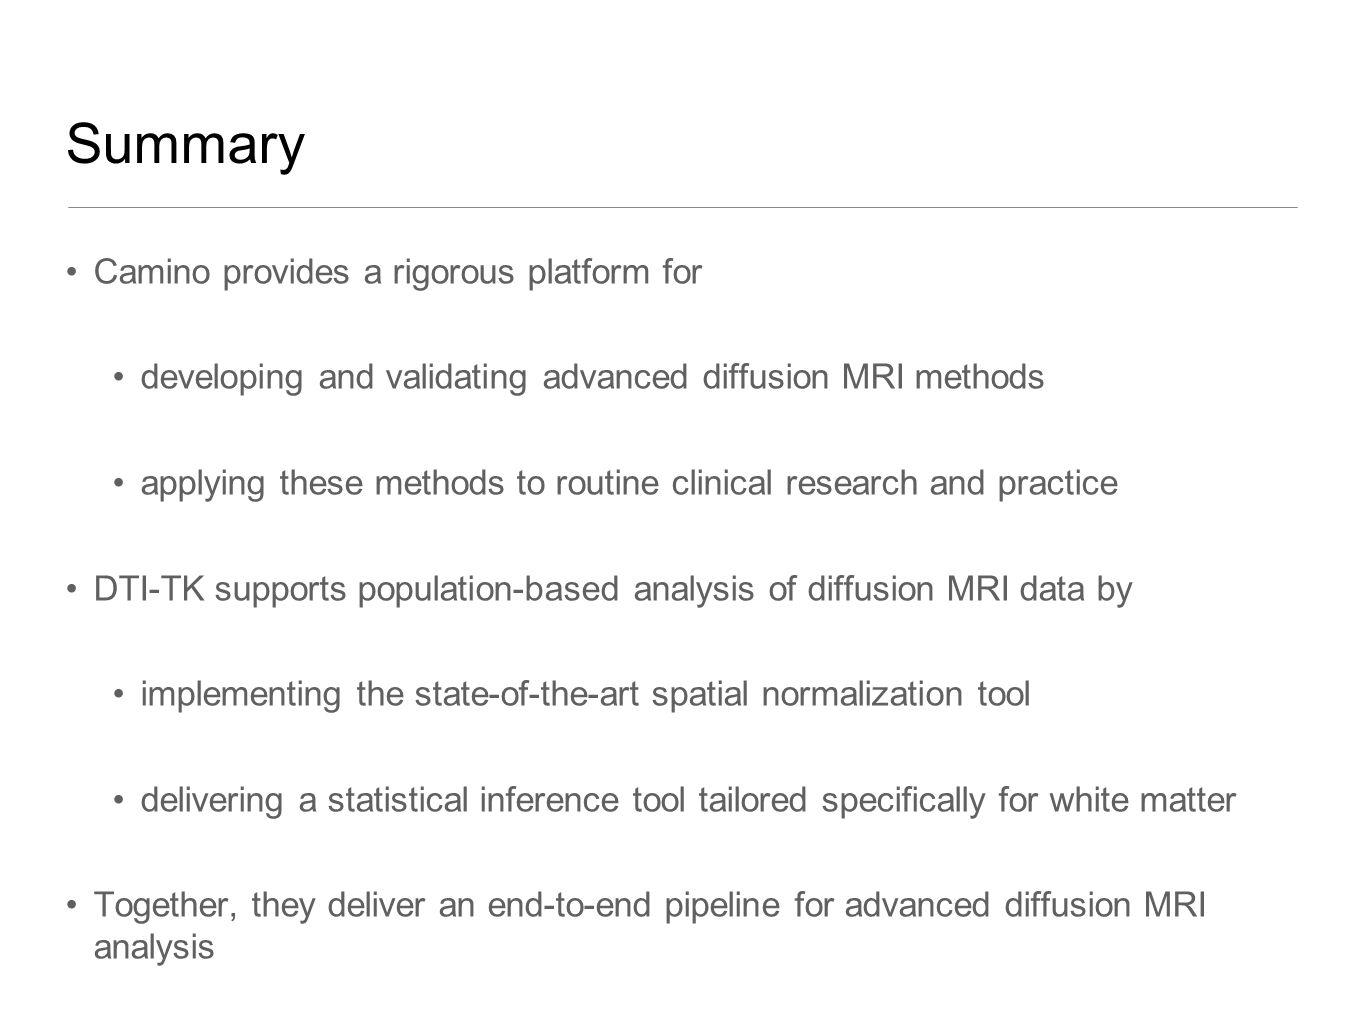 Summary Camino provides a rigorous platform for developing and validating advanced diffusion MRI methods applying these methods to routine clinical research and practice DTI-TK supports population-based analysis of diffusion MRI data by implementing the state-of-the-art spatial normalization tool delivering a statistical inference tool tailored specifically for white matter Together, they deliver an end-to-end pipeline for advanced diffusion MRI analysis